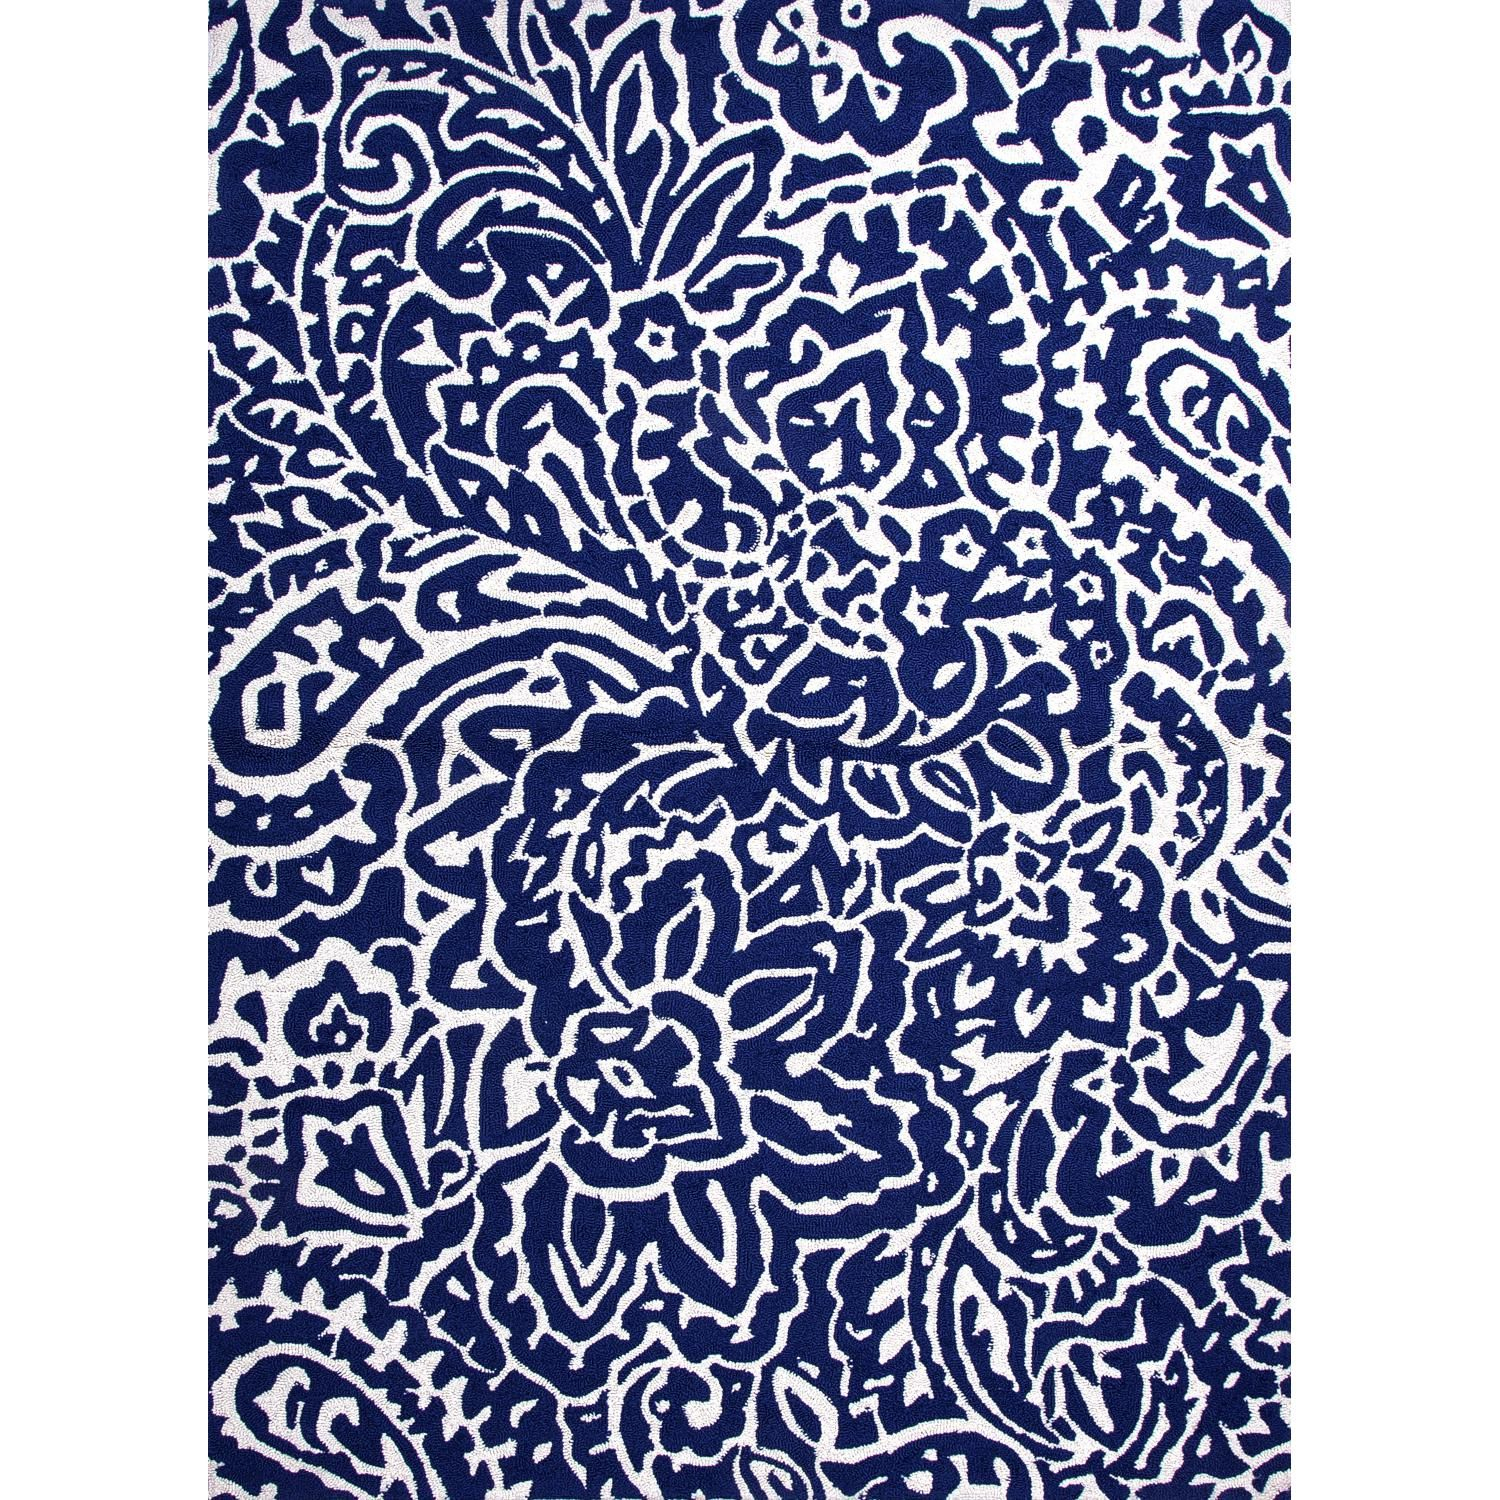 Jaipur Rugs Barcelona Flores 5 X 7 6 Indoor Outdoor Rug Blue Ivory Rug100203 Paisley Rug Floral Area Rugs Blue Area Rugs